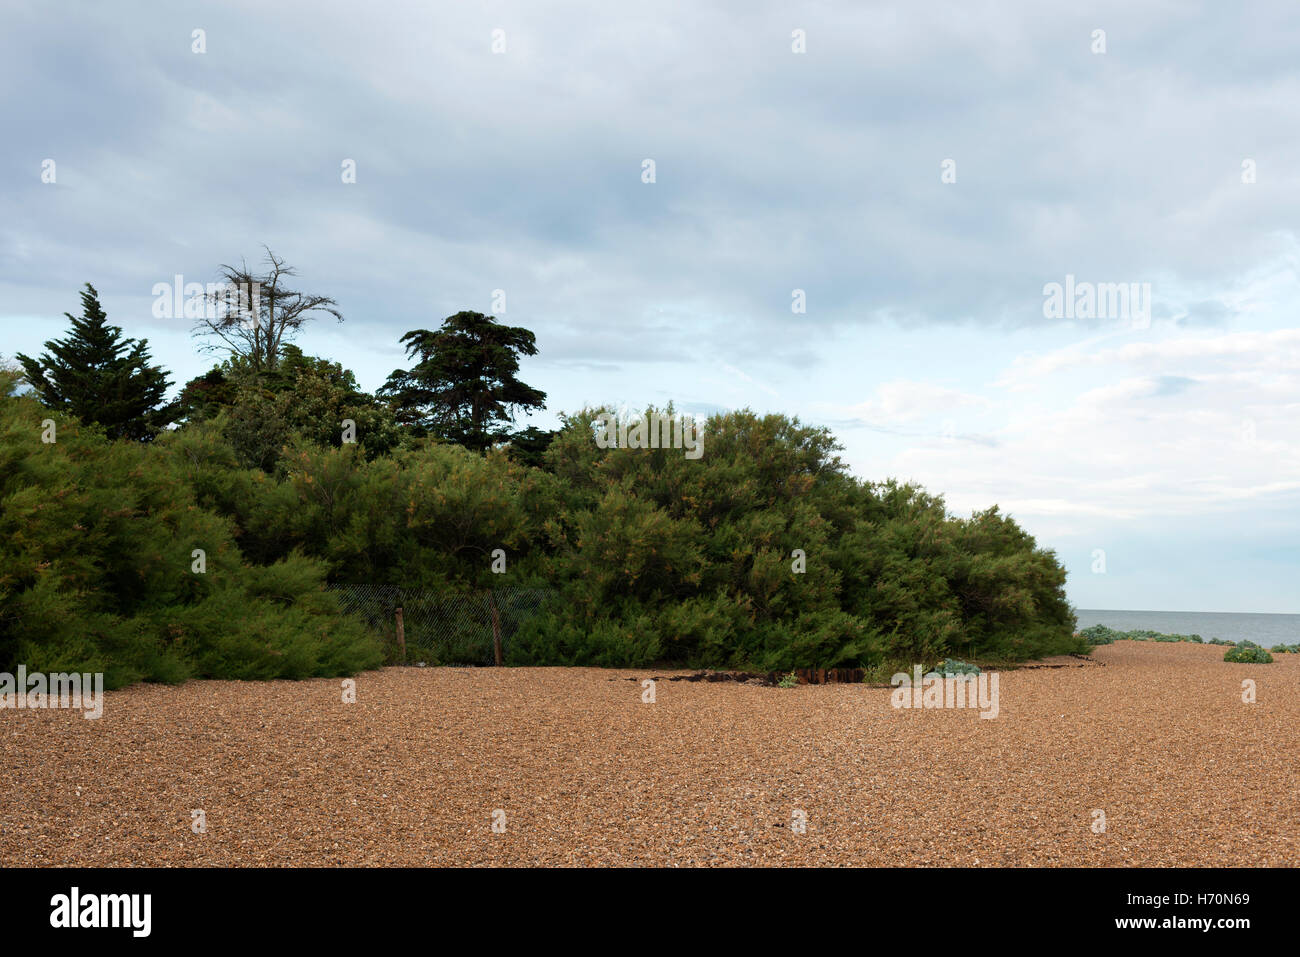 Undergrowth on the edge of a beach, Bawdsey Ferry, Suffolk, UK. Stock Photo